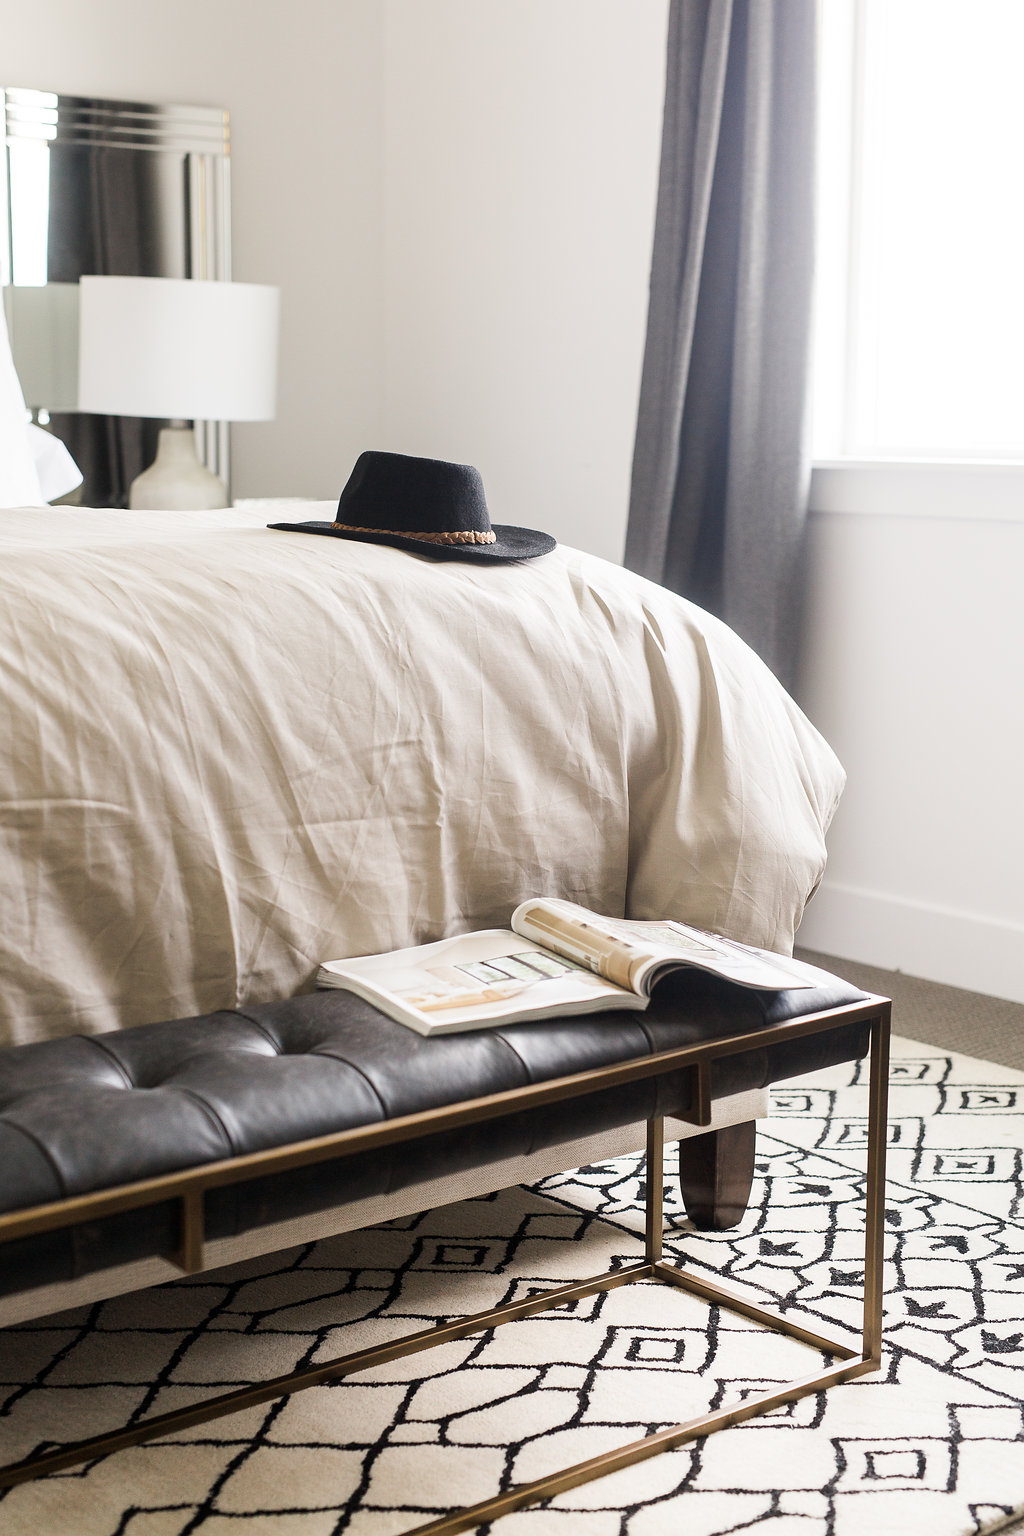 Akin Design Studio | Ironhorse Master Bedroom | Black and gold